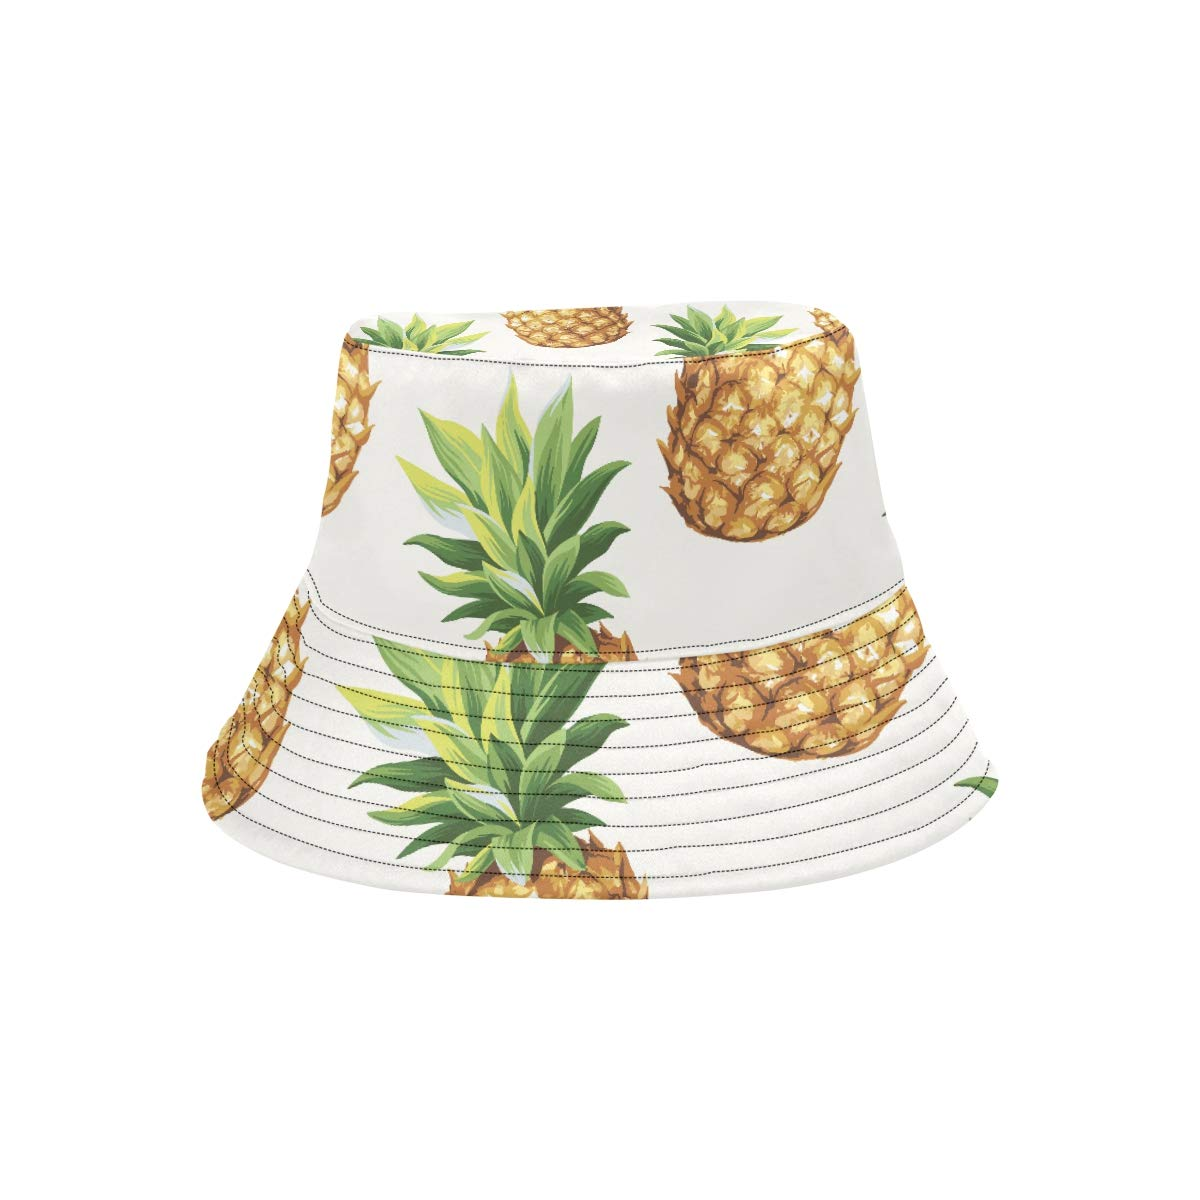 Golden Yellow Summer Cool Pineapple Oxeye New Summer Unisex Cotton Fashion Fishing Sun Bucket Hats for Kid Teens Women and Men with Customize Top Packable Fisherman Cap for Outdoor Travel